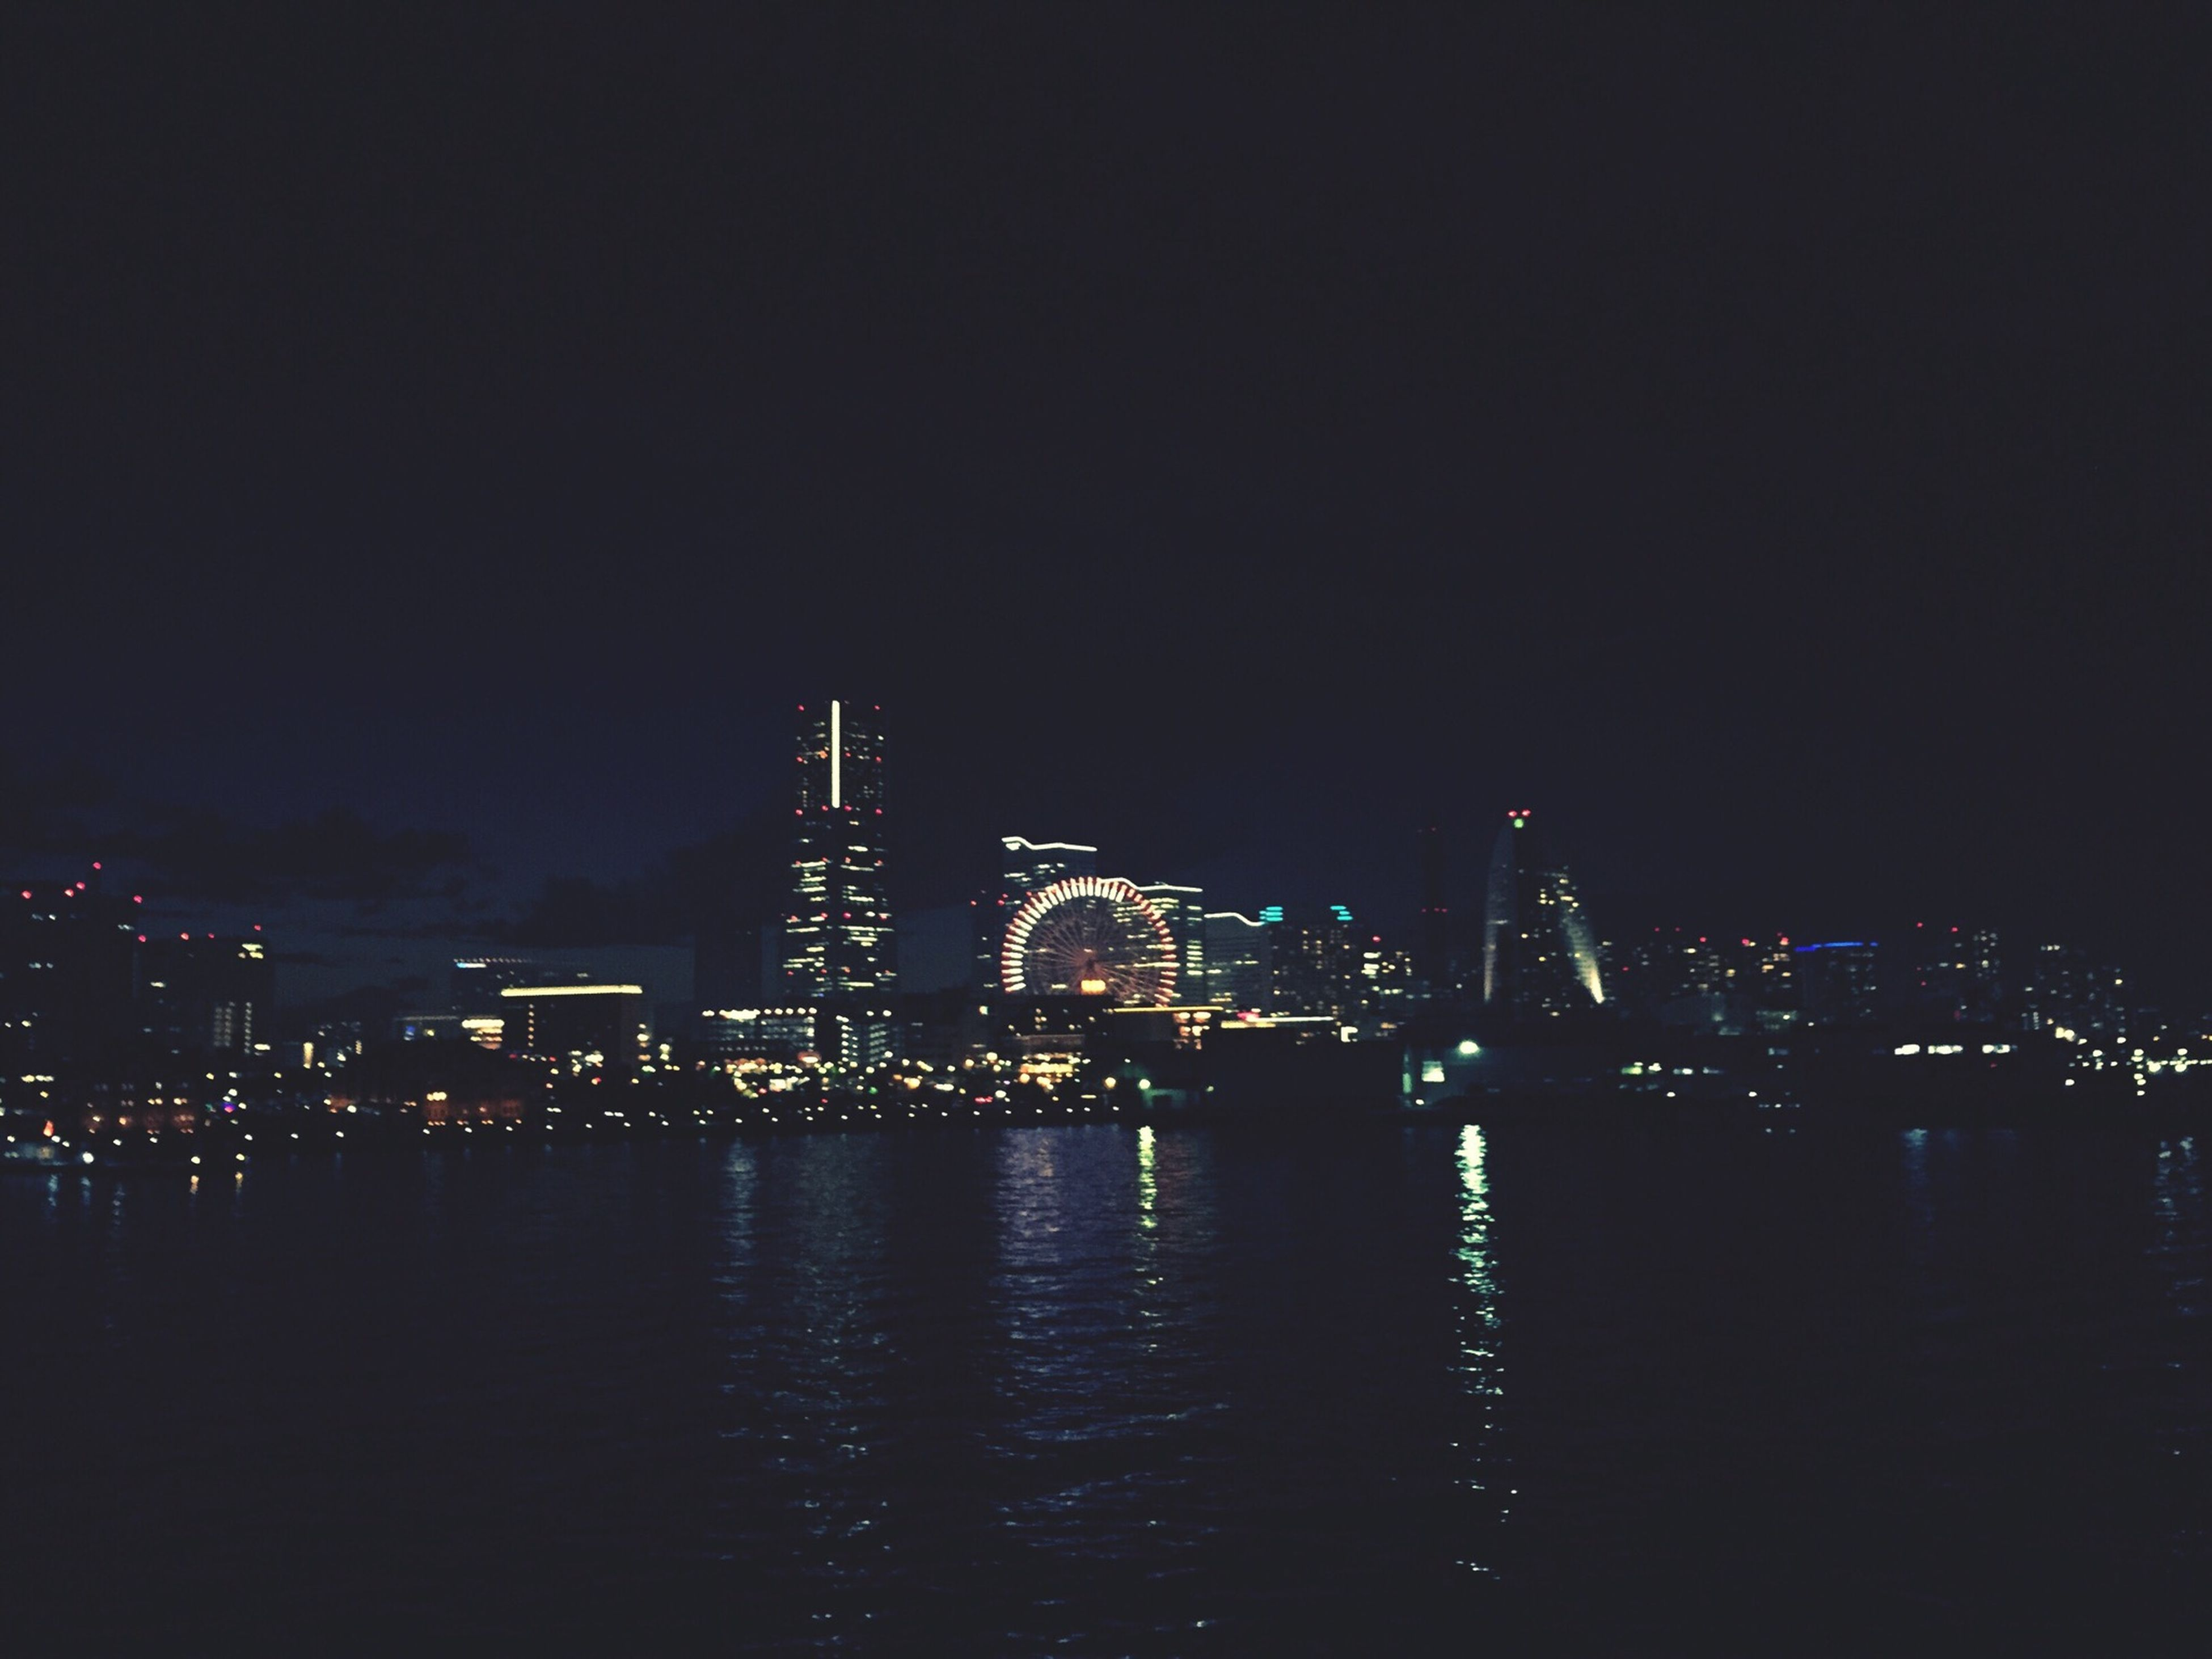 night, illuminated, water, waterfront, architecture, built structure, city, reflection, river, building exterior, copy space, clear sky, sky, cityscape, dark, bridge - man made structure, sea, connection, no people, outdoors